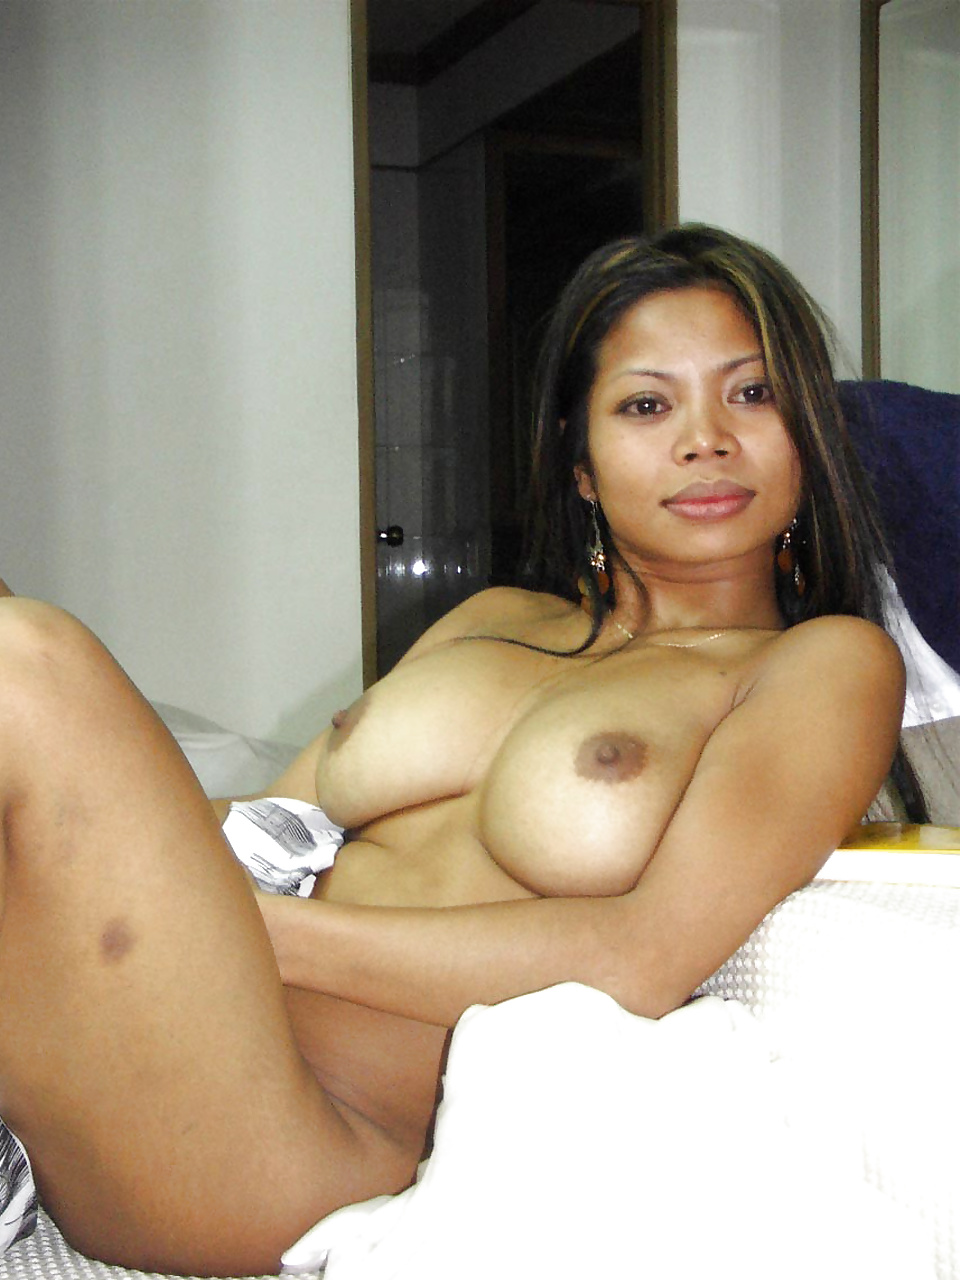 Filipina women masterbating cleaning her